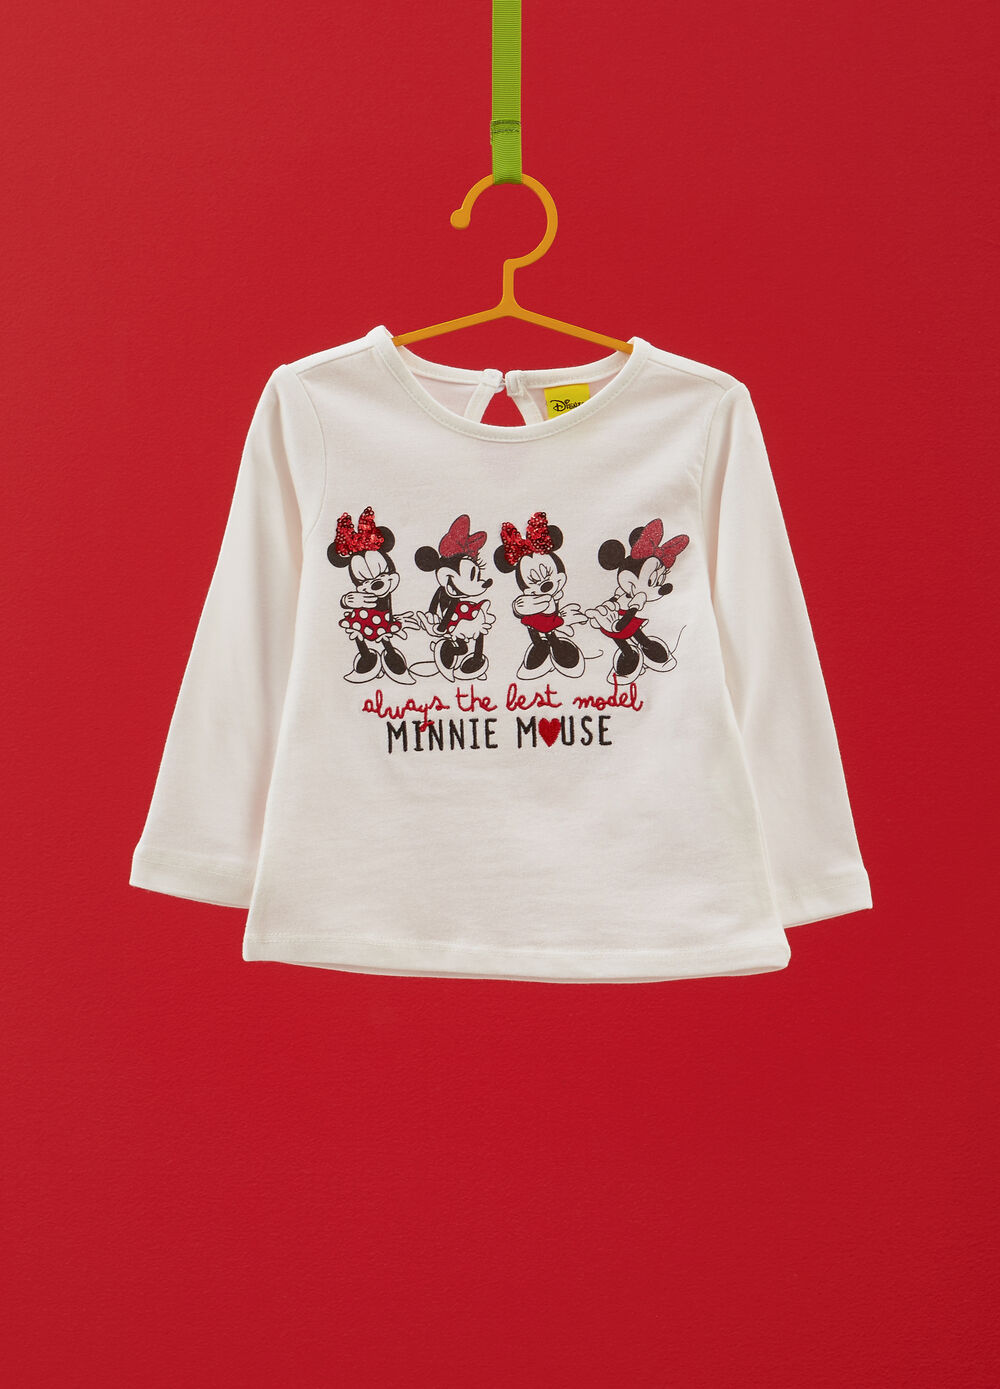 100% cotton T-shirt with embroidery and Minnie Mouse print